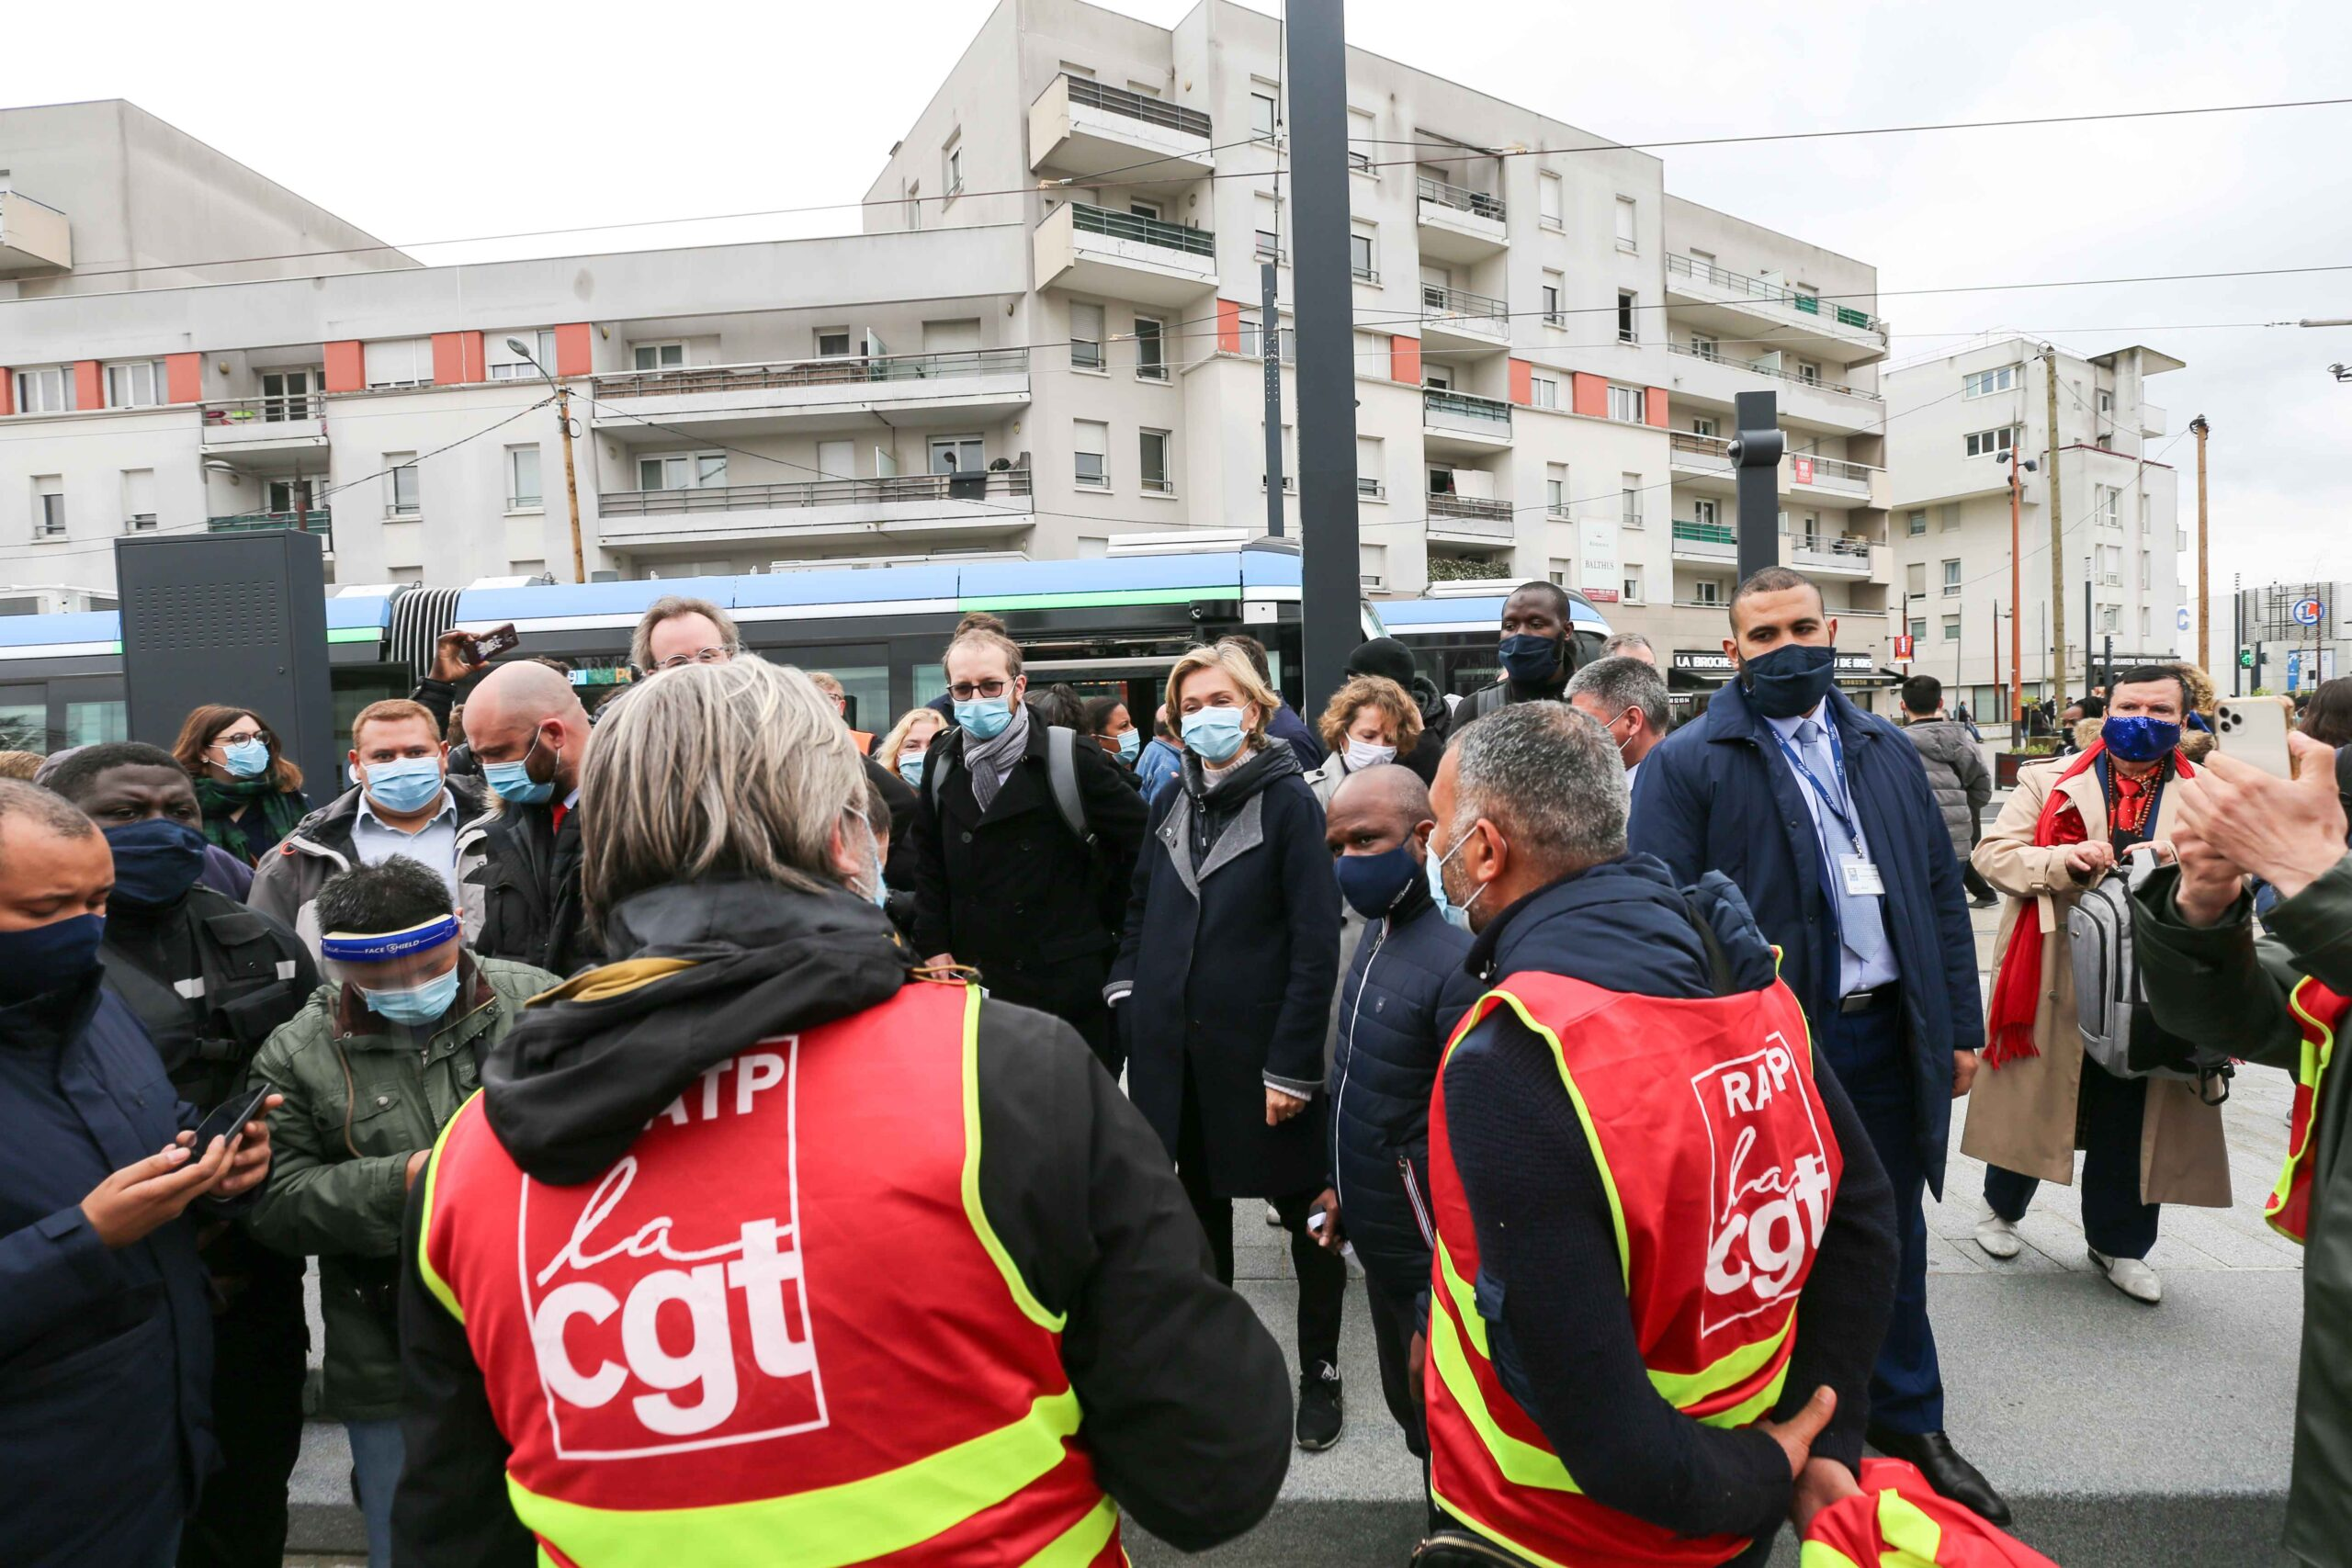 President of the French region of Ile-de-France Valerie Pecresse (C) speaks with CGT unionists  as she  inaugurates the new tramway T9 tram line between Porte de Choisy and Orly City, southeastern Paris, on April 10, 2021 at Orly City.Line T9 connects Po